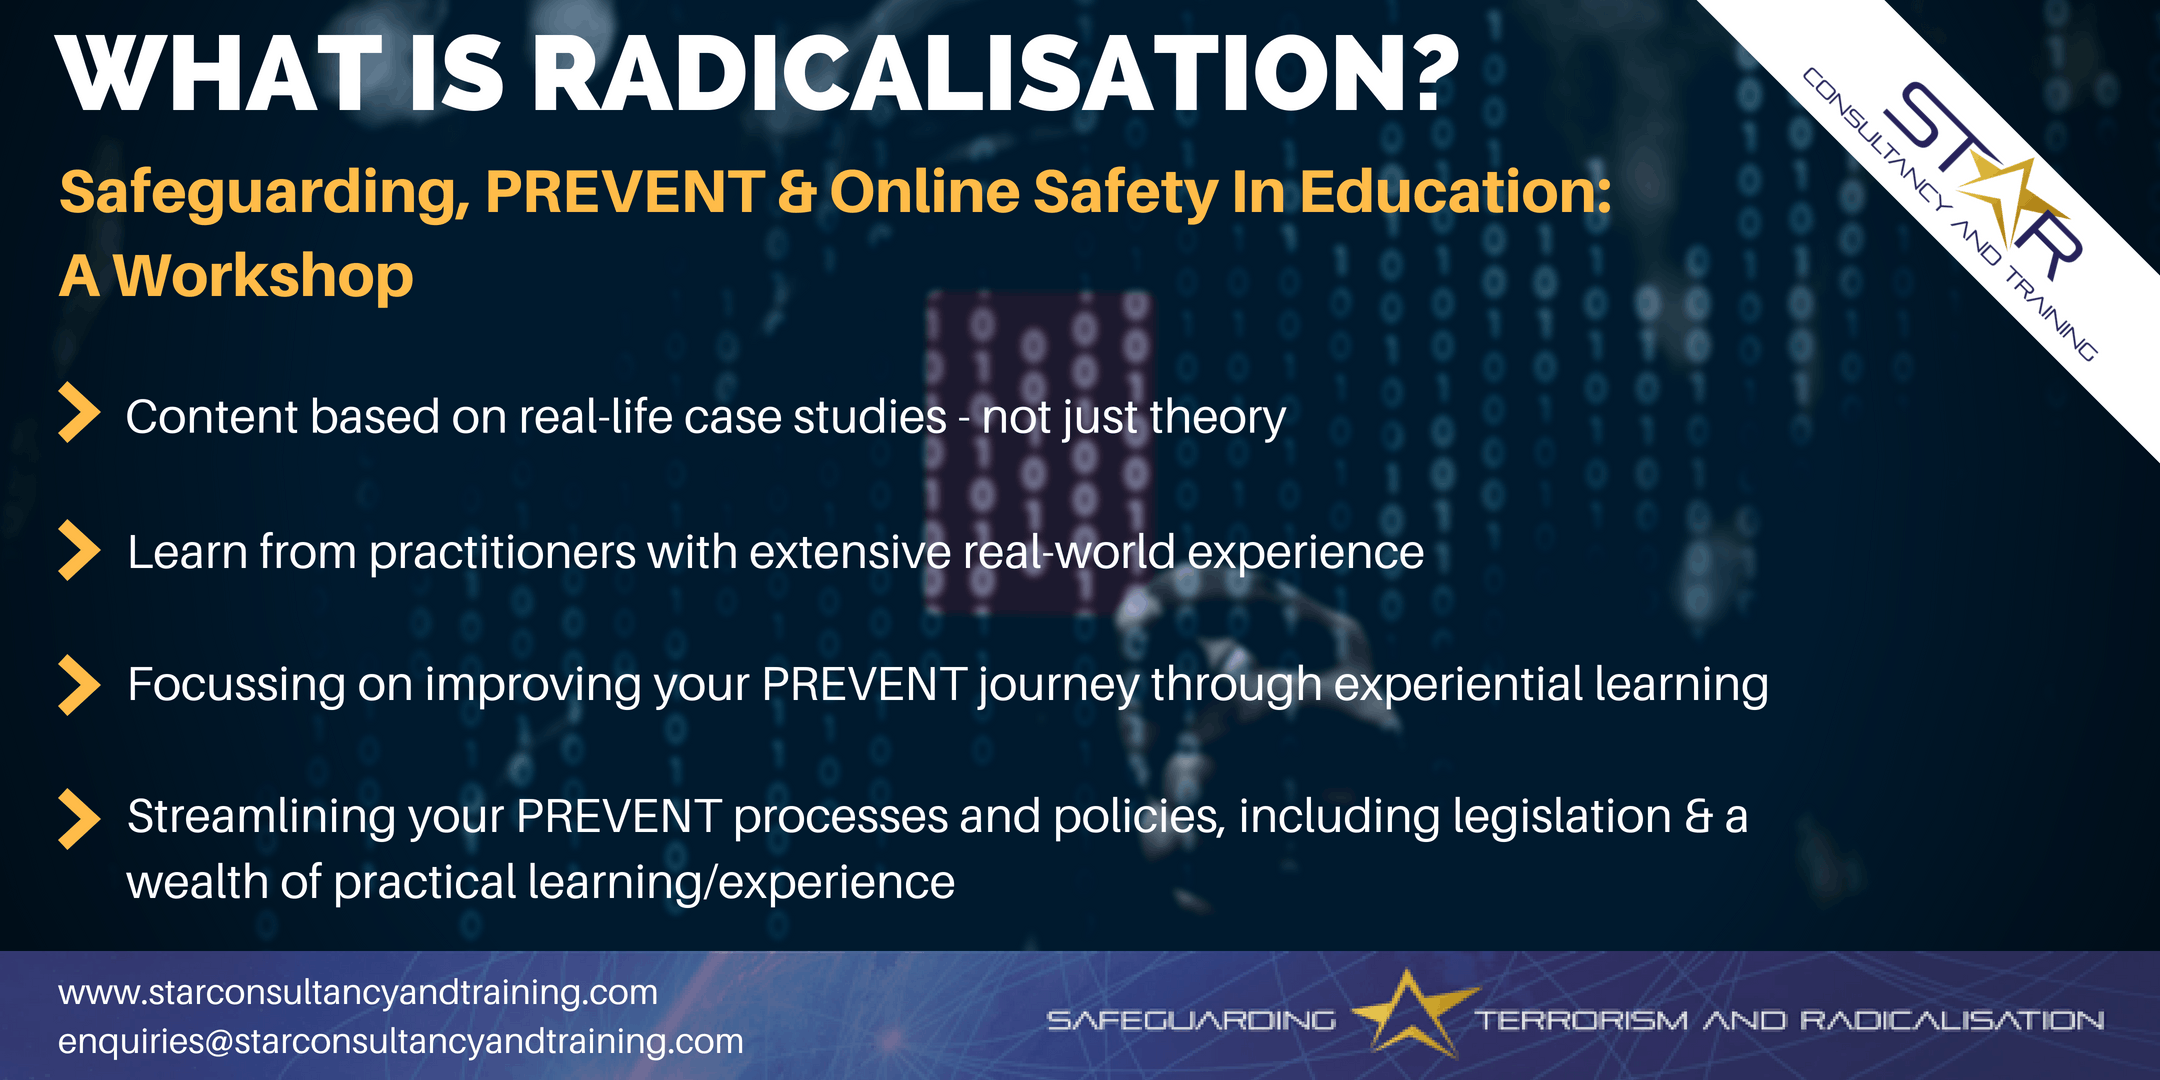 Safeguarding Prevent and Online Safety in Education